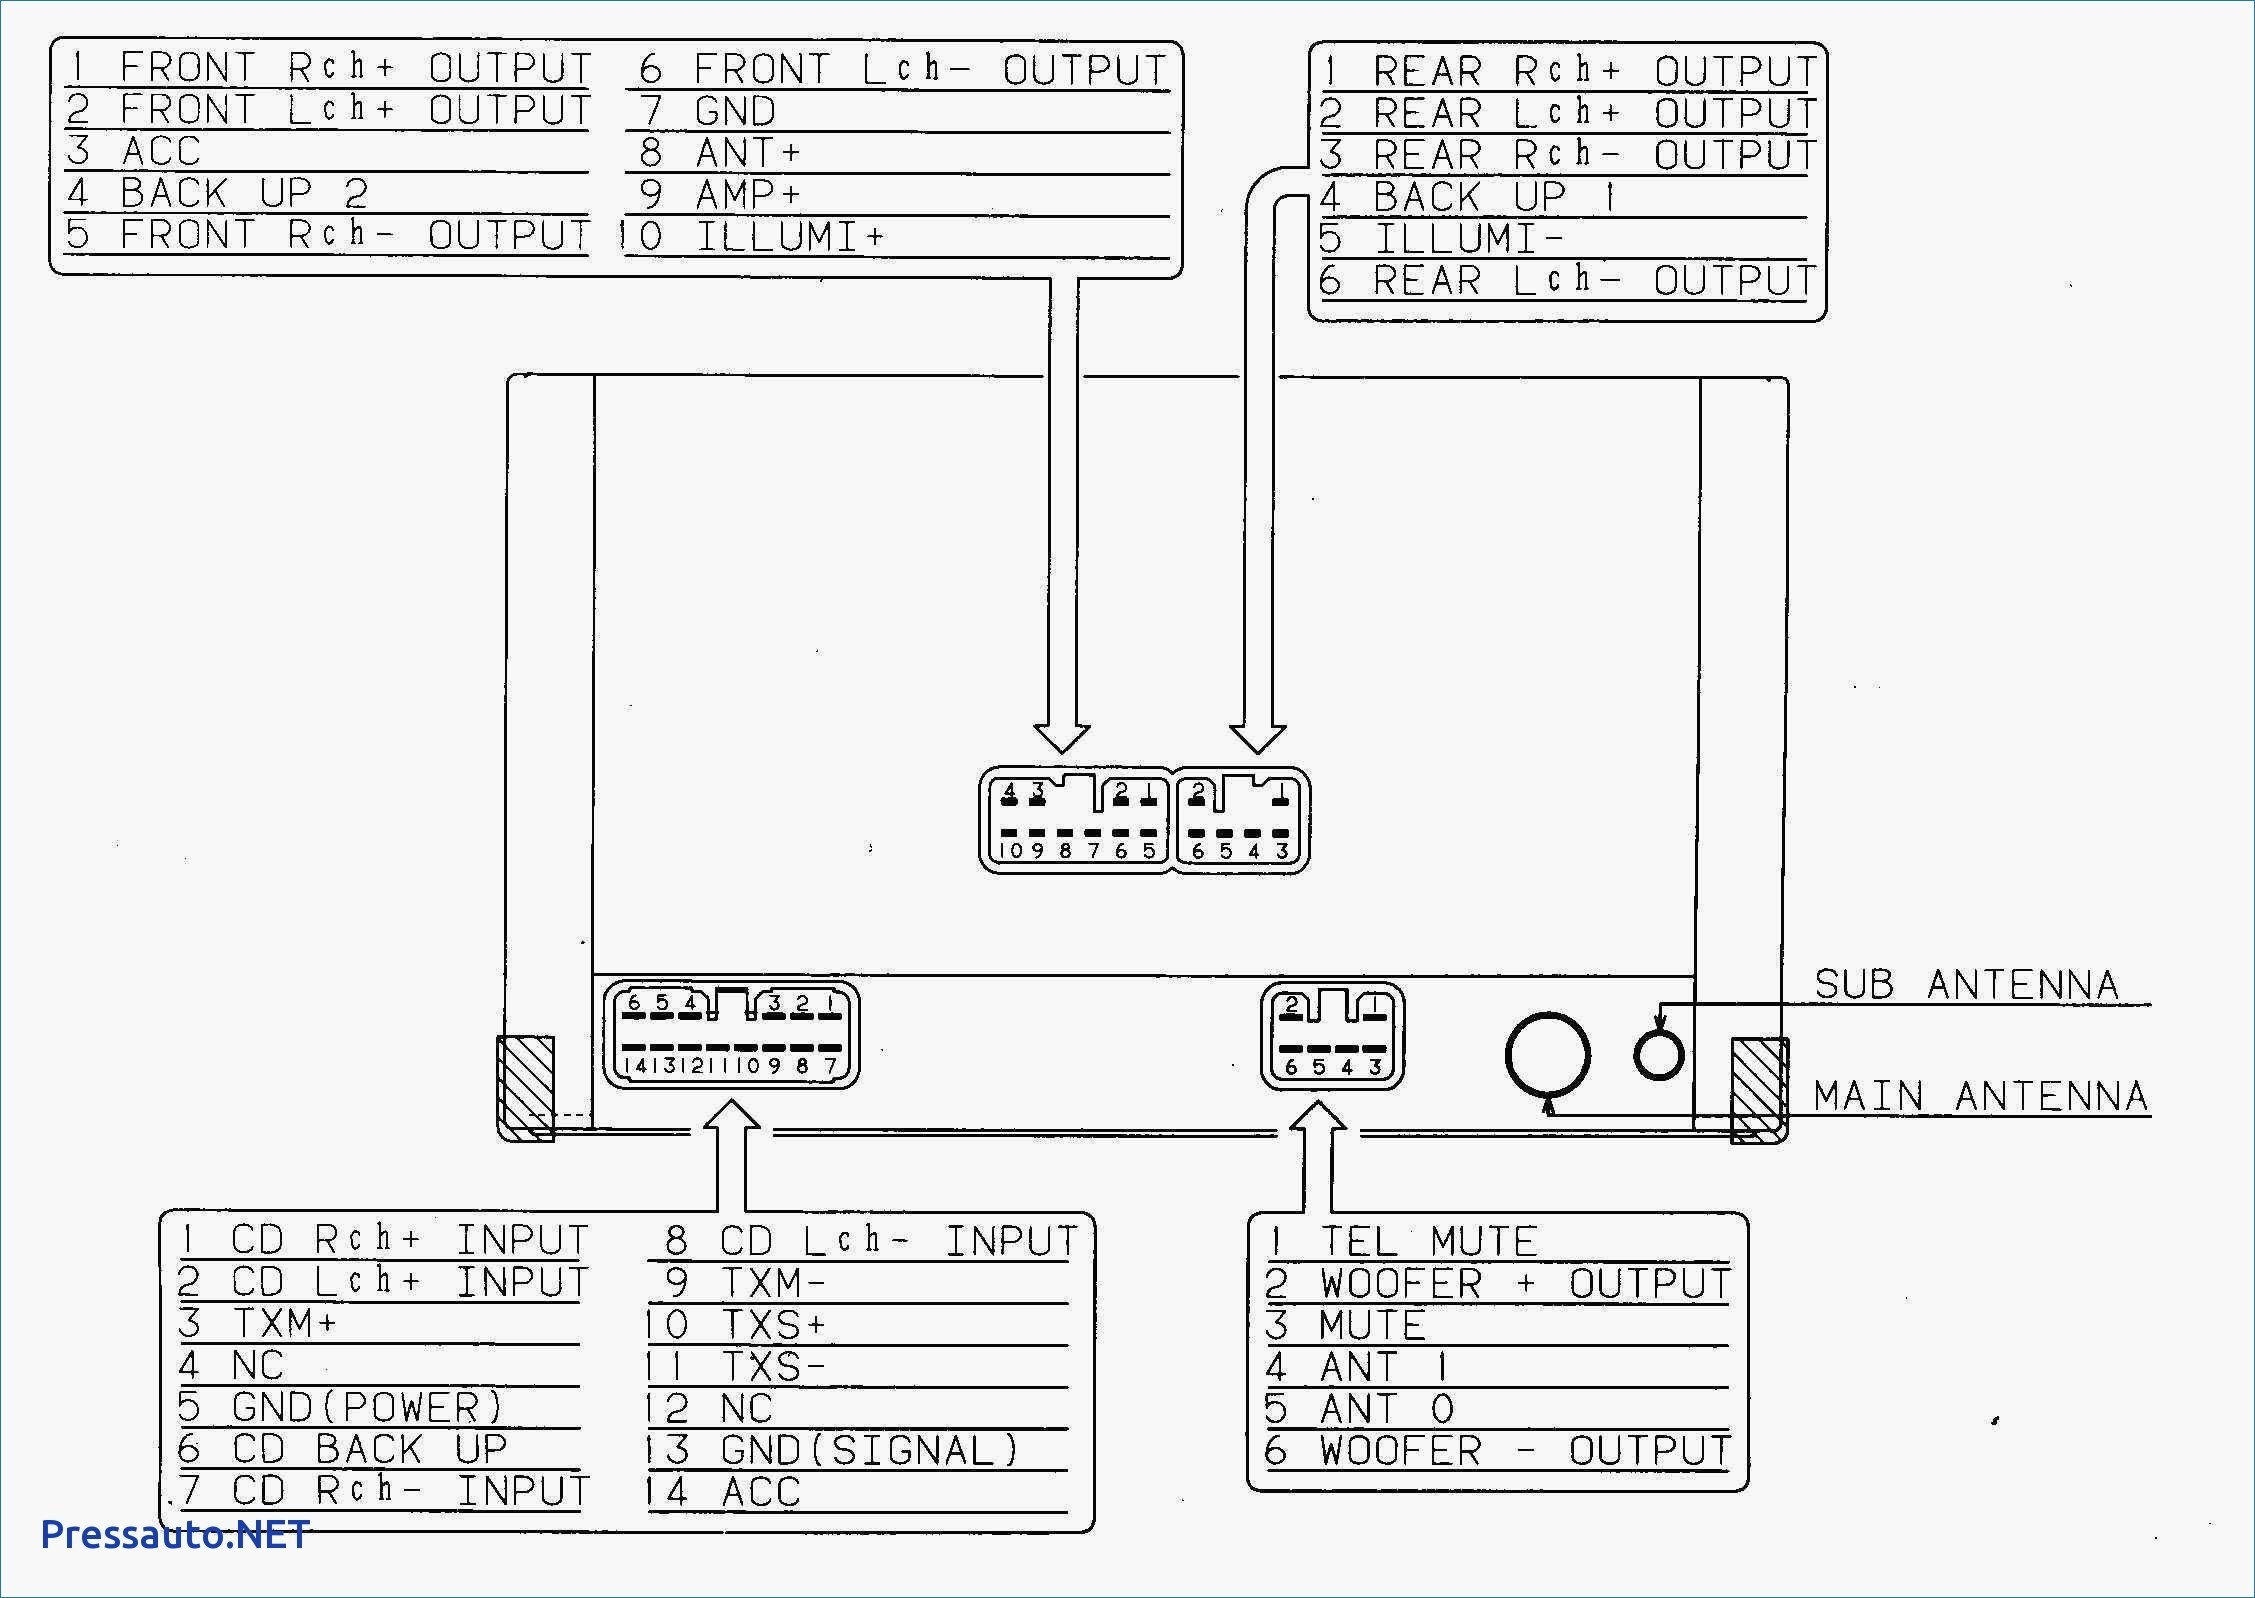 Car Stereo Wiring Diagram Lovely Excellent Clarion Car Stereo Wiring Diagram Bmw X5